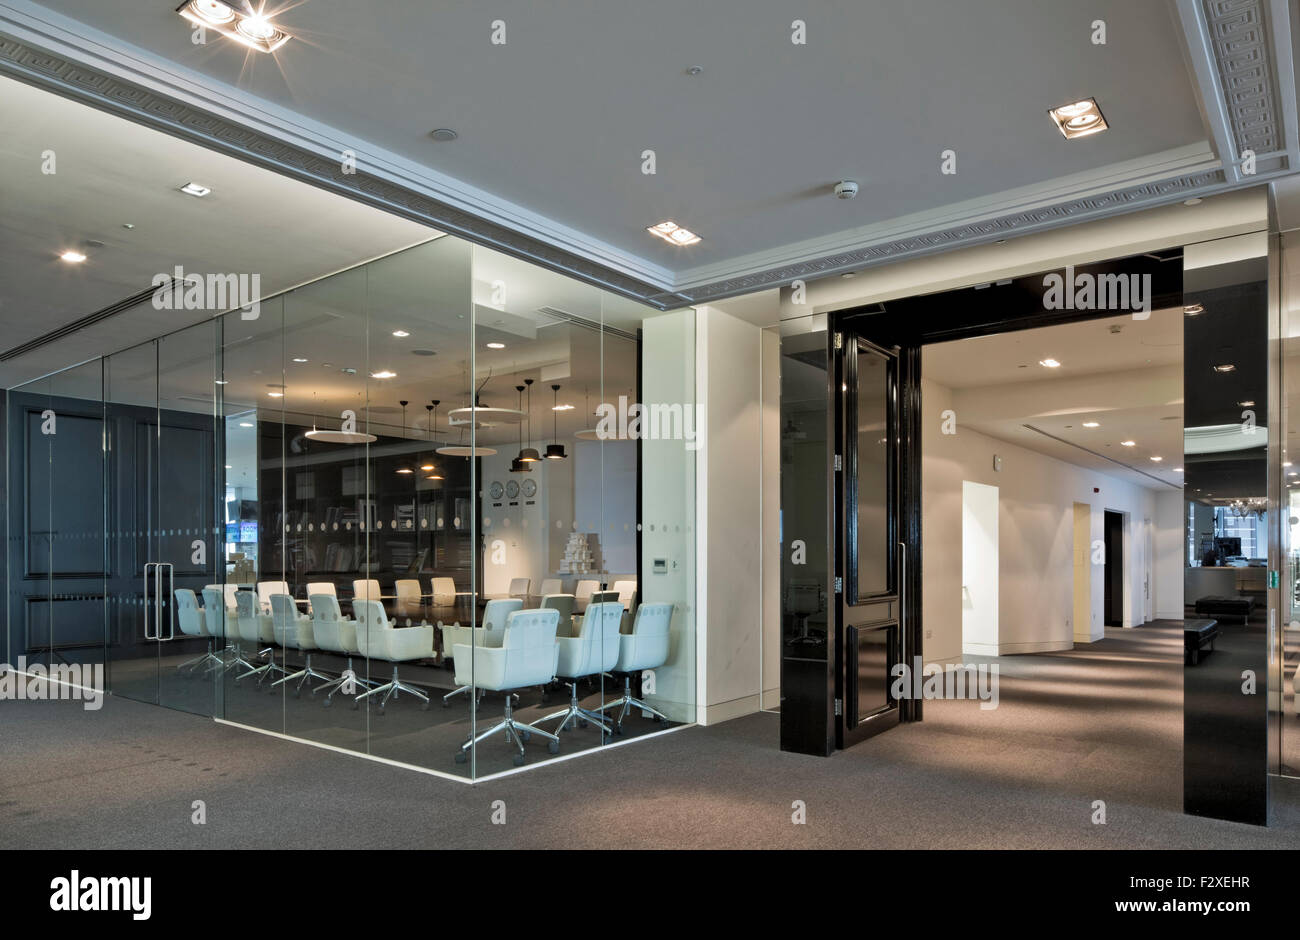 Le Meilleur Mr Porter Boardroom Net A Porter Offices At The Westfield Ce Mois Ci